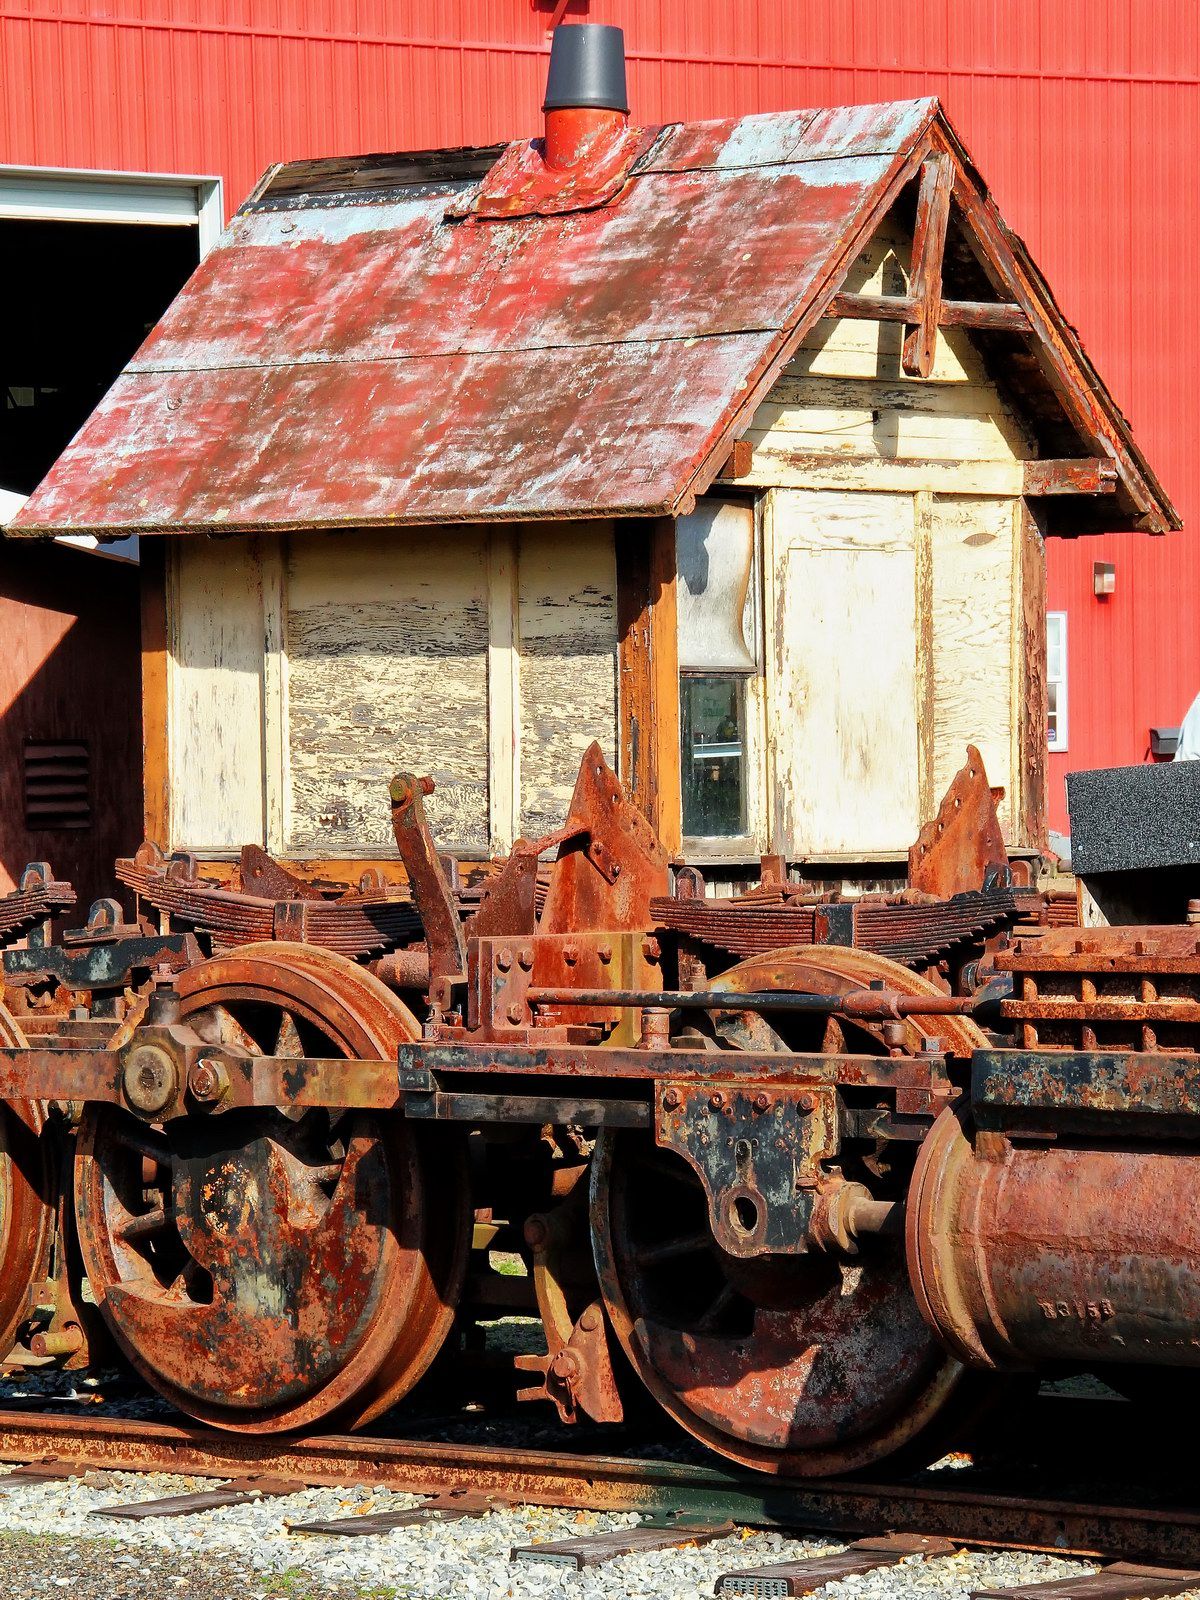 kempton, pennsylvania, wk and s railroad, iron, rust,, photo